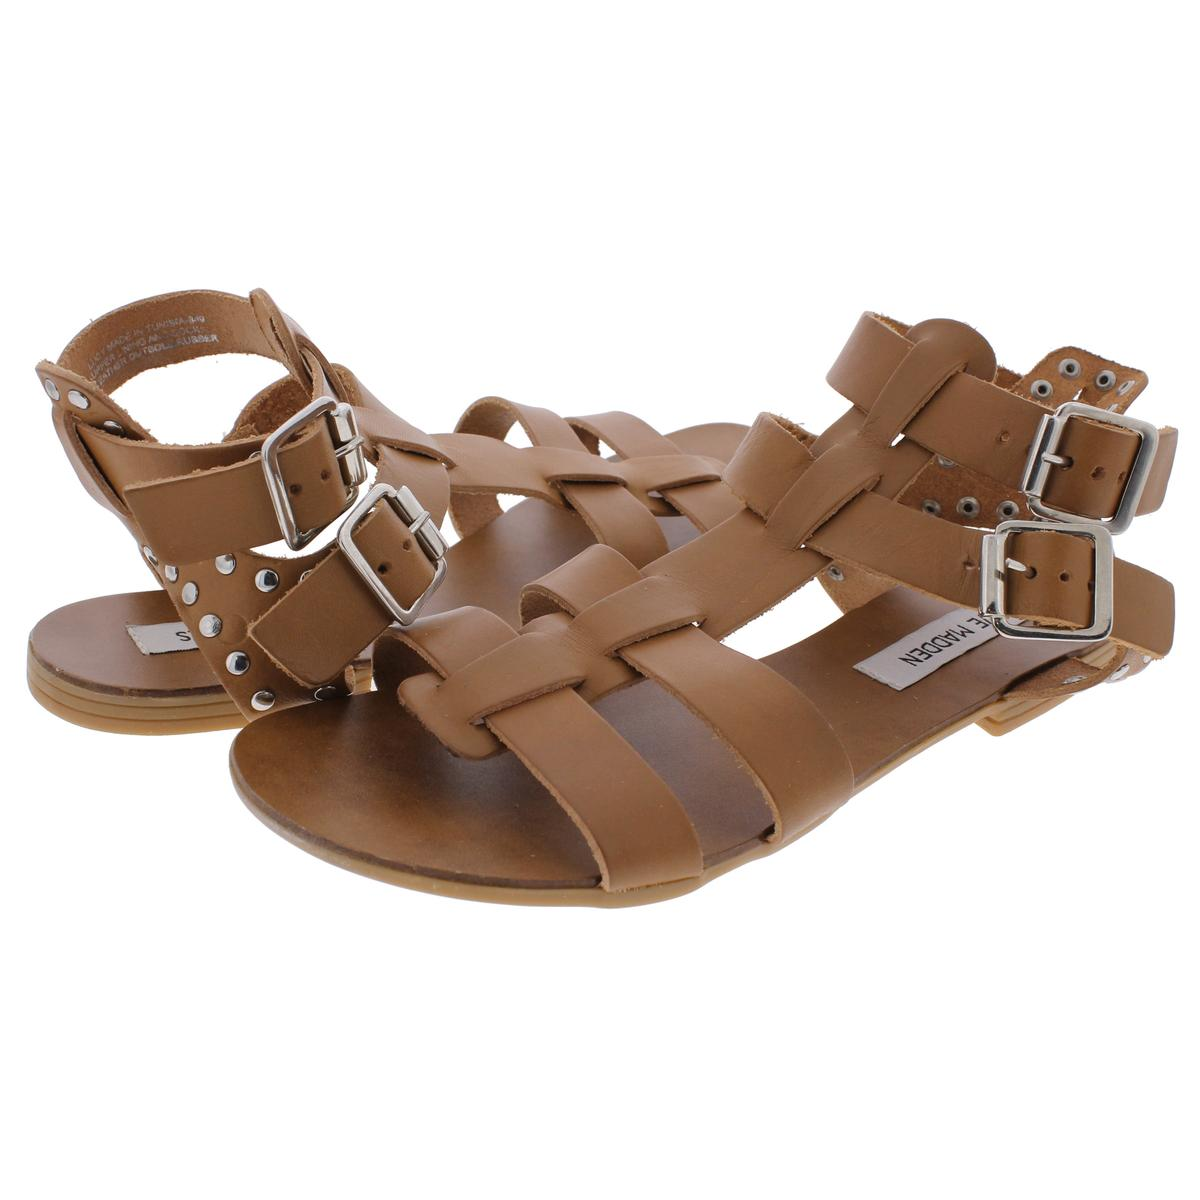 Steve-Madden-Womens-Lucy-Open-Toe-Studded-Strappy-Dress-Sandals-Shoes-BHFO-1682 thumbnail 10